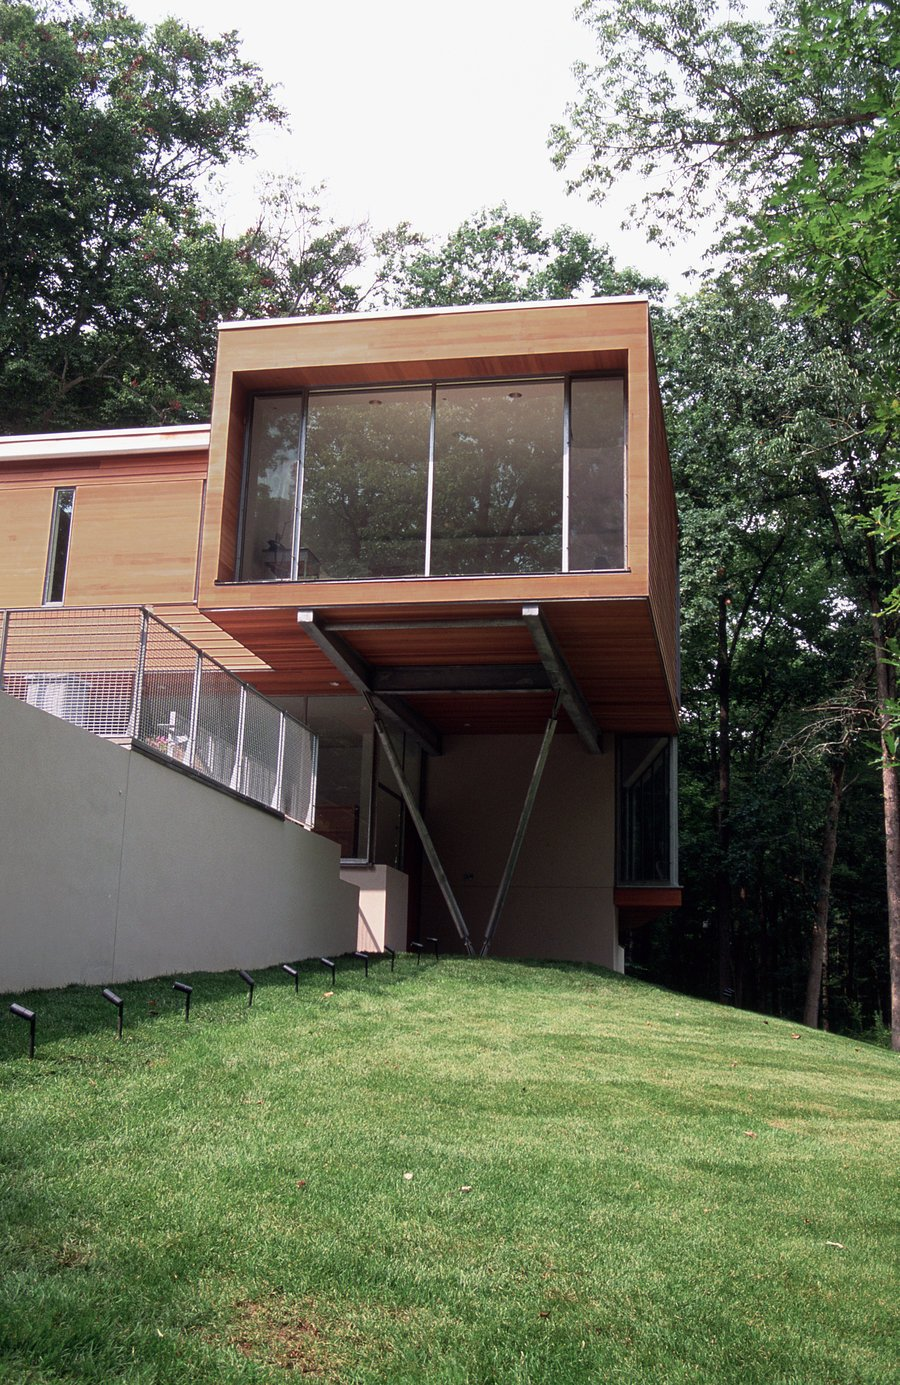 #outside #outdoor #exterior #landscape #modern #grass #trees #Princeton #NewJersey #GarrisonArchitects